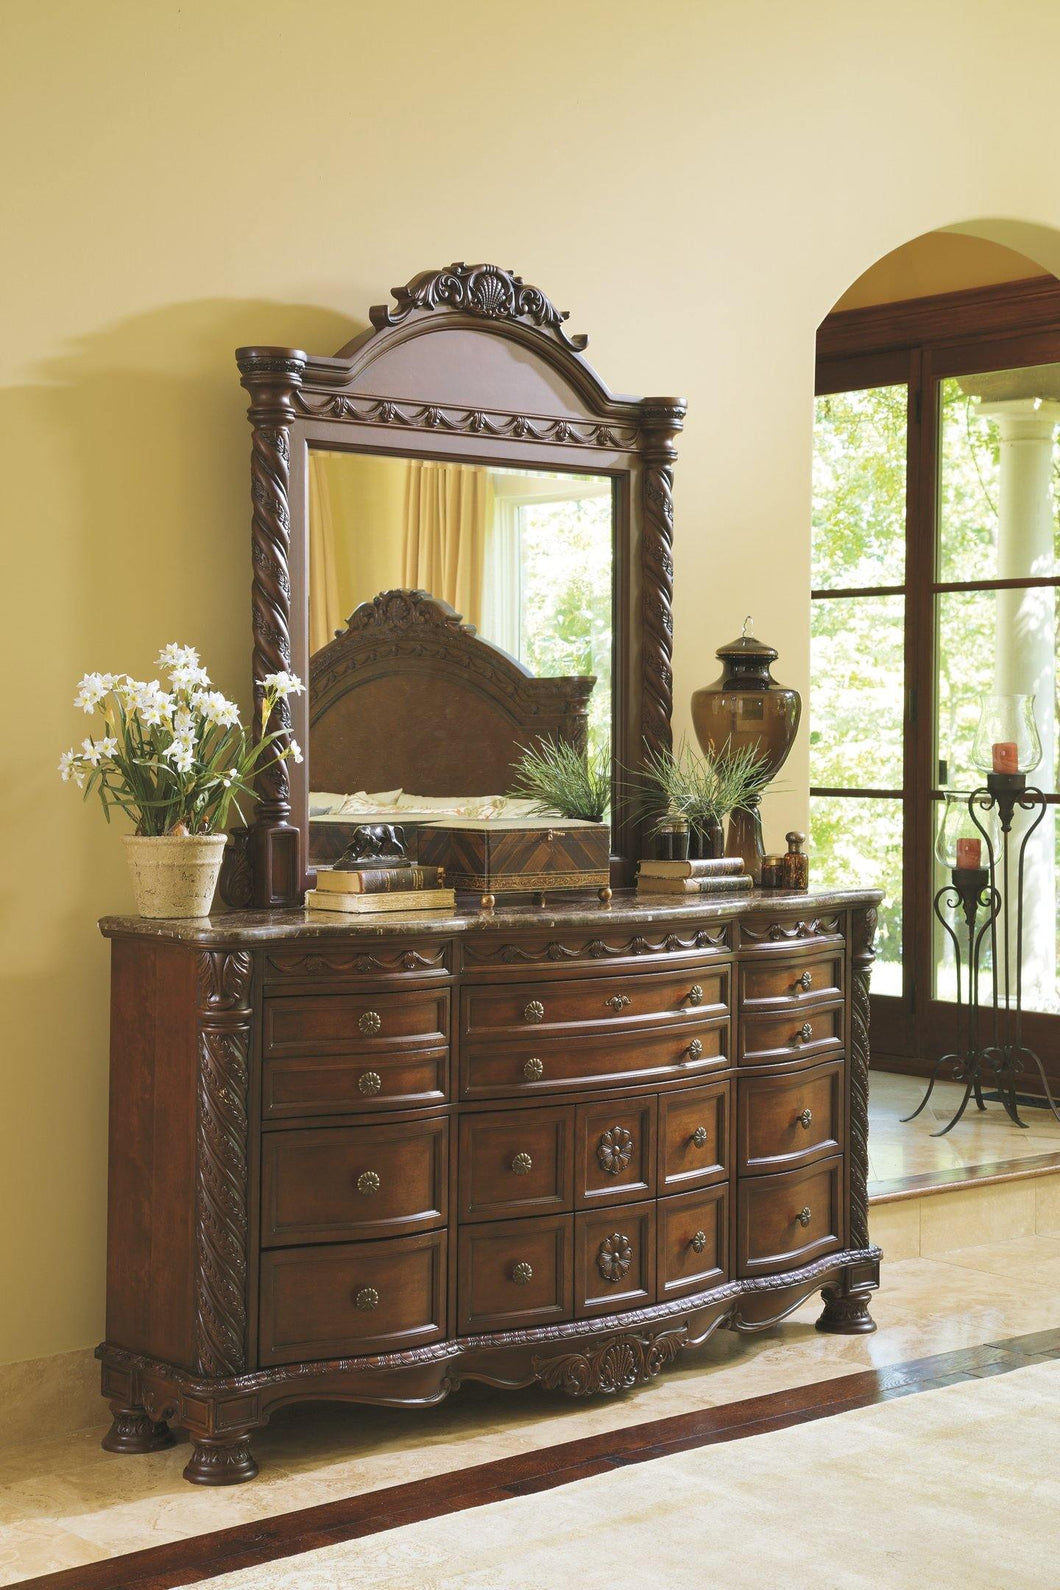 North Shore Dresser and Mirror B553B35 By Ashley Furniture from sofafair